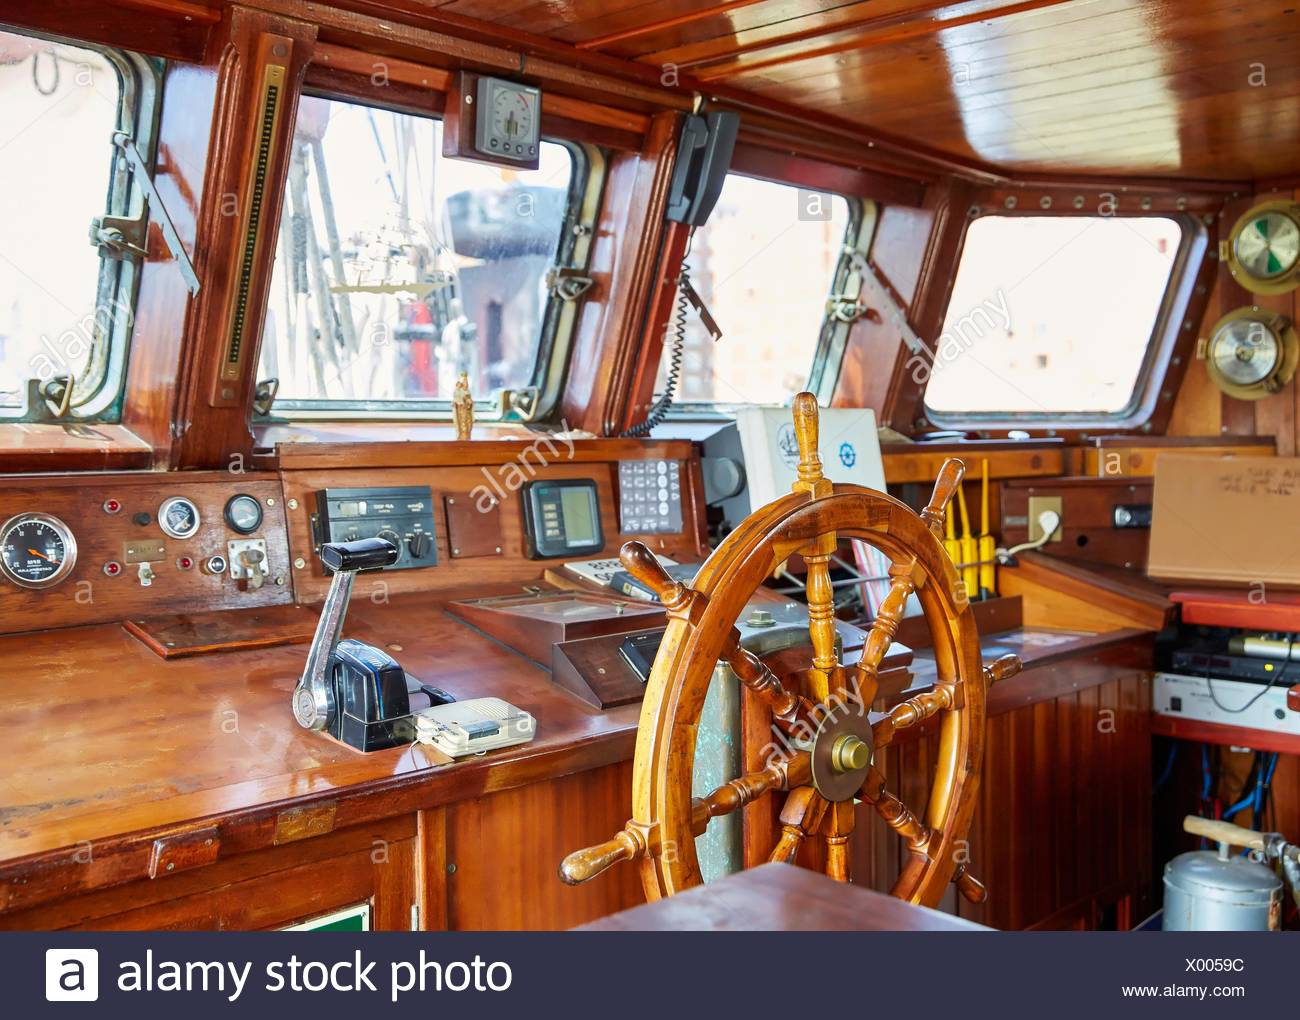 Helm of a sailboat, galleon. Basque Country. Spain - Stock Image